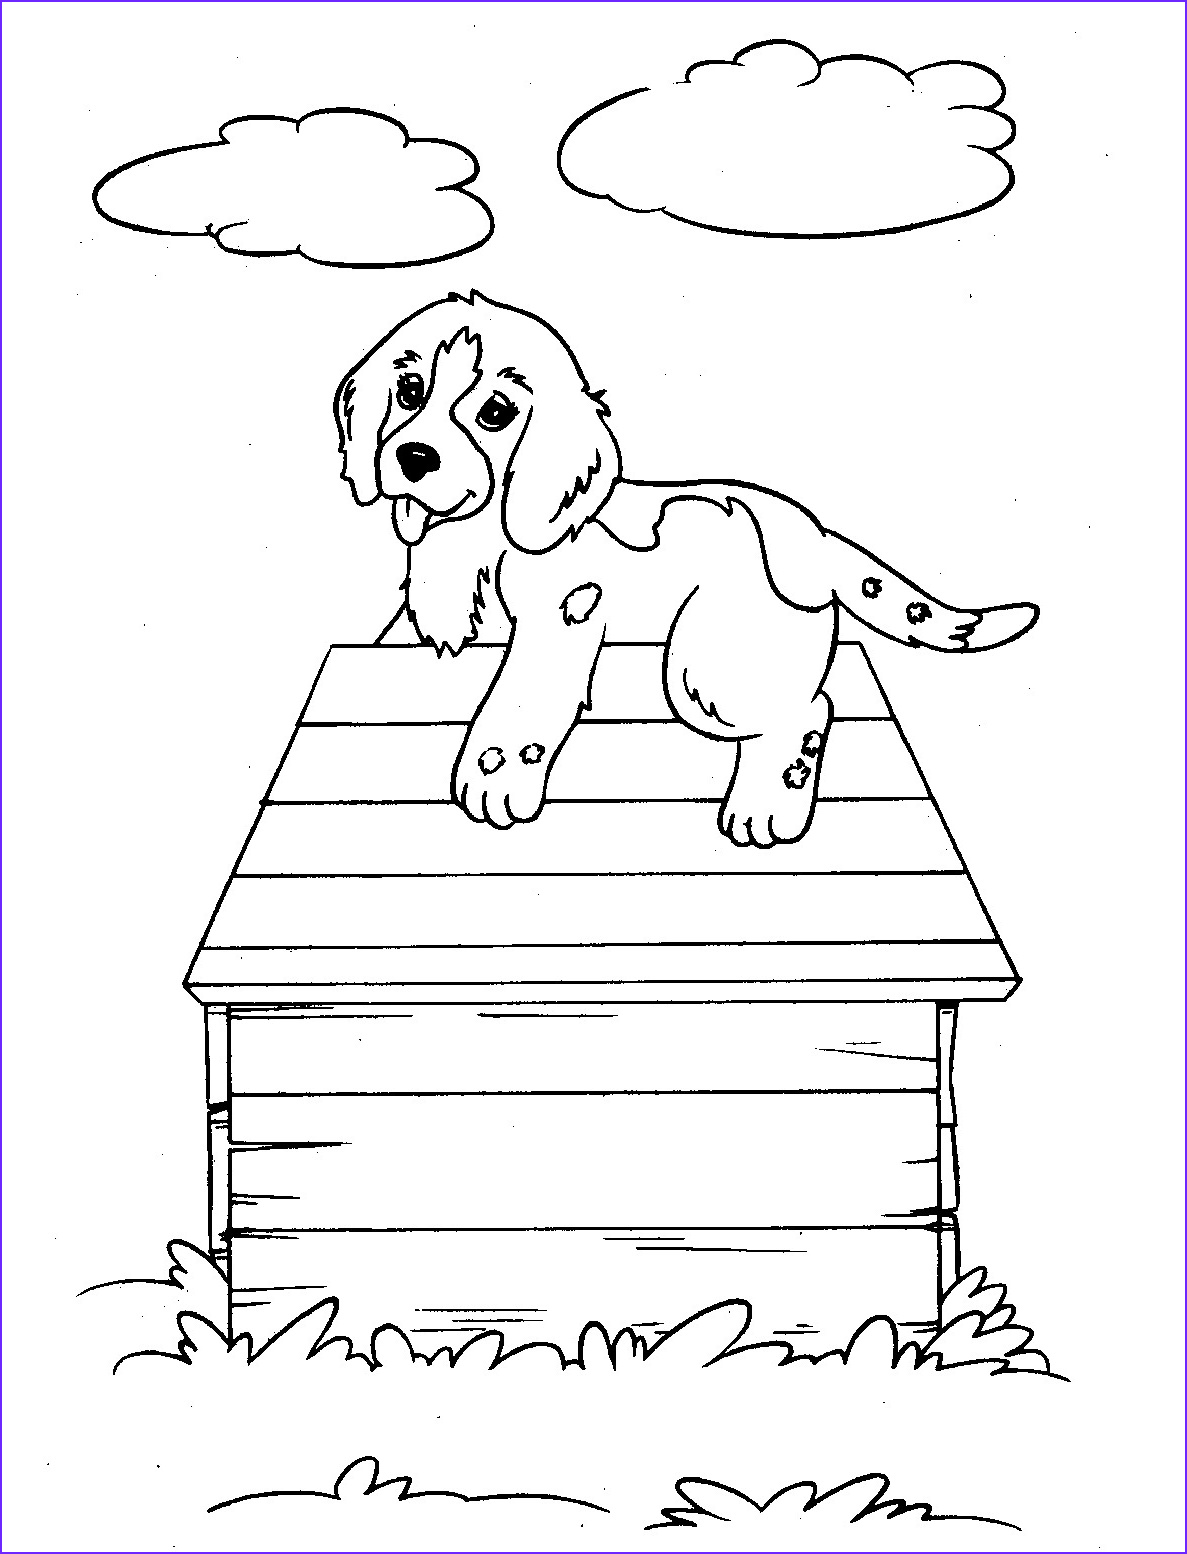 Puppy Coloring Page Beautiful Photos Free Printable Puppies Coloring Pages for Kids